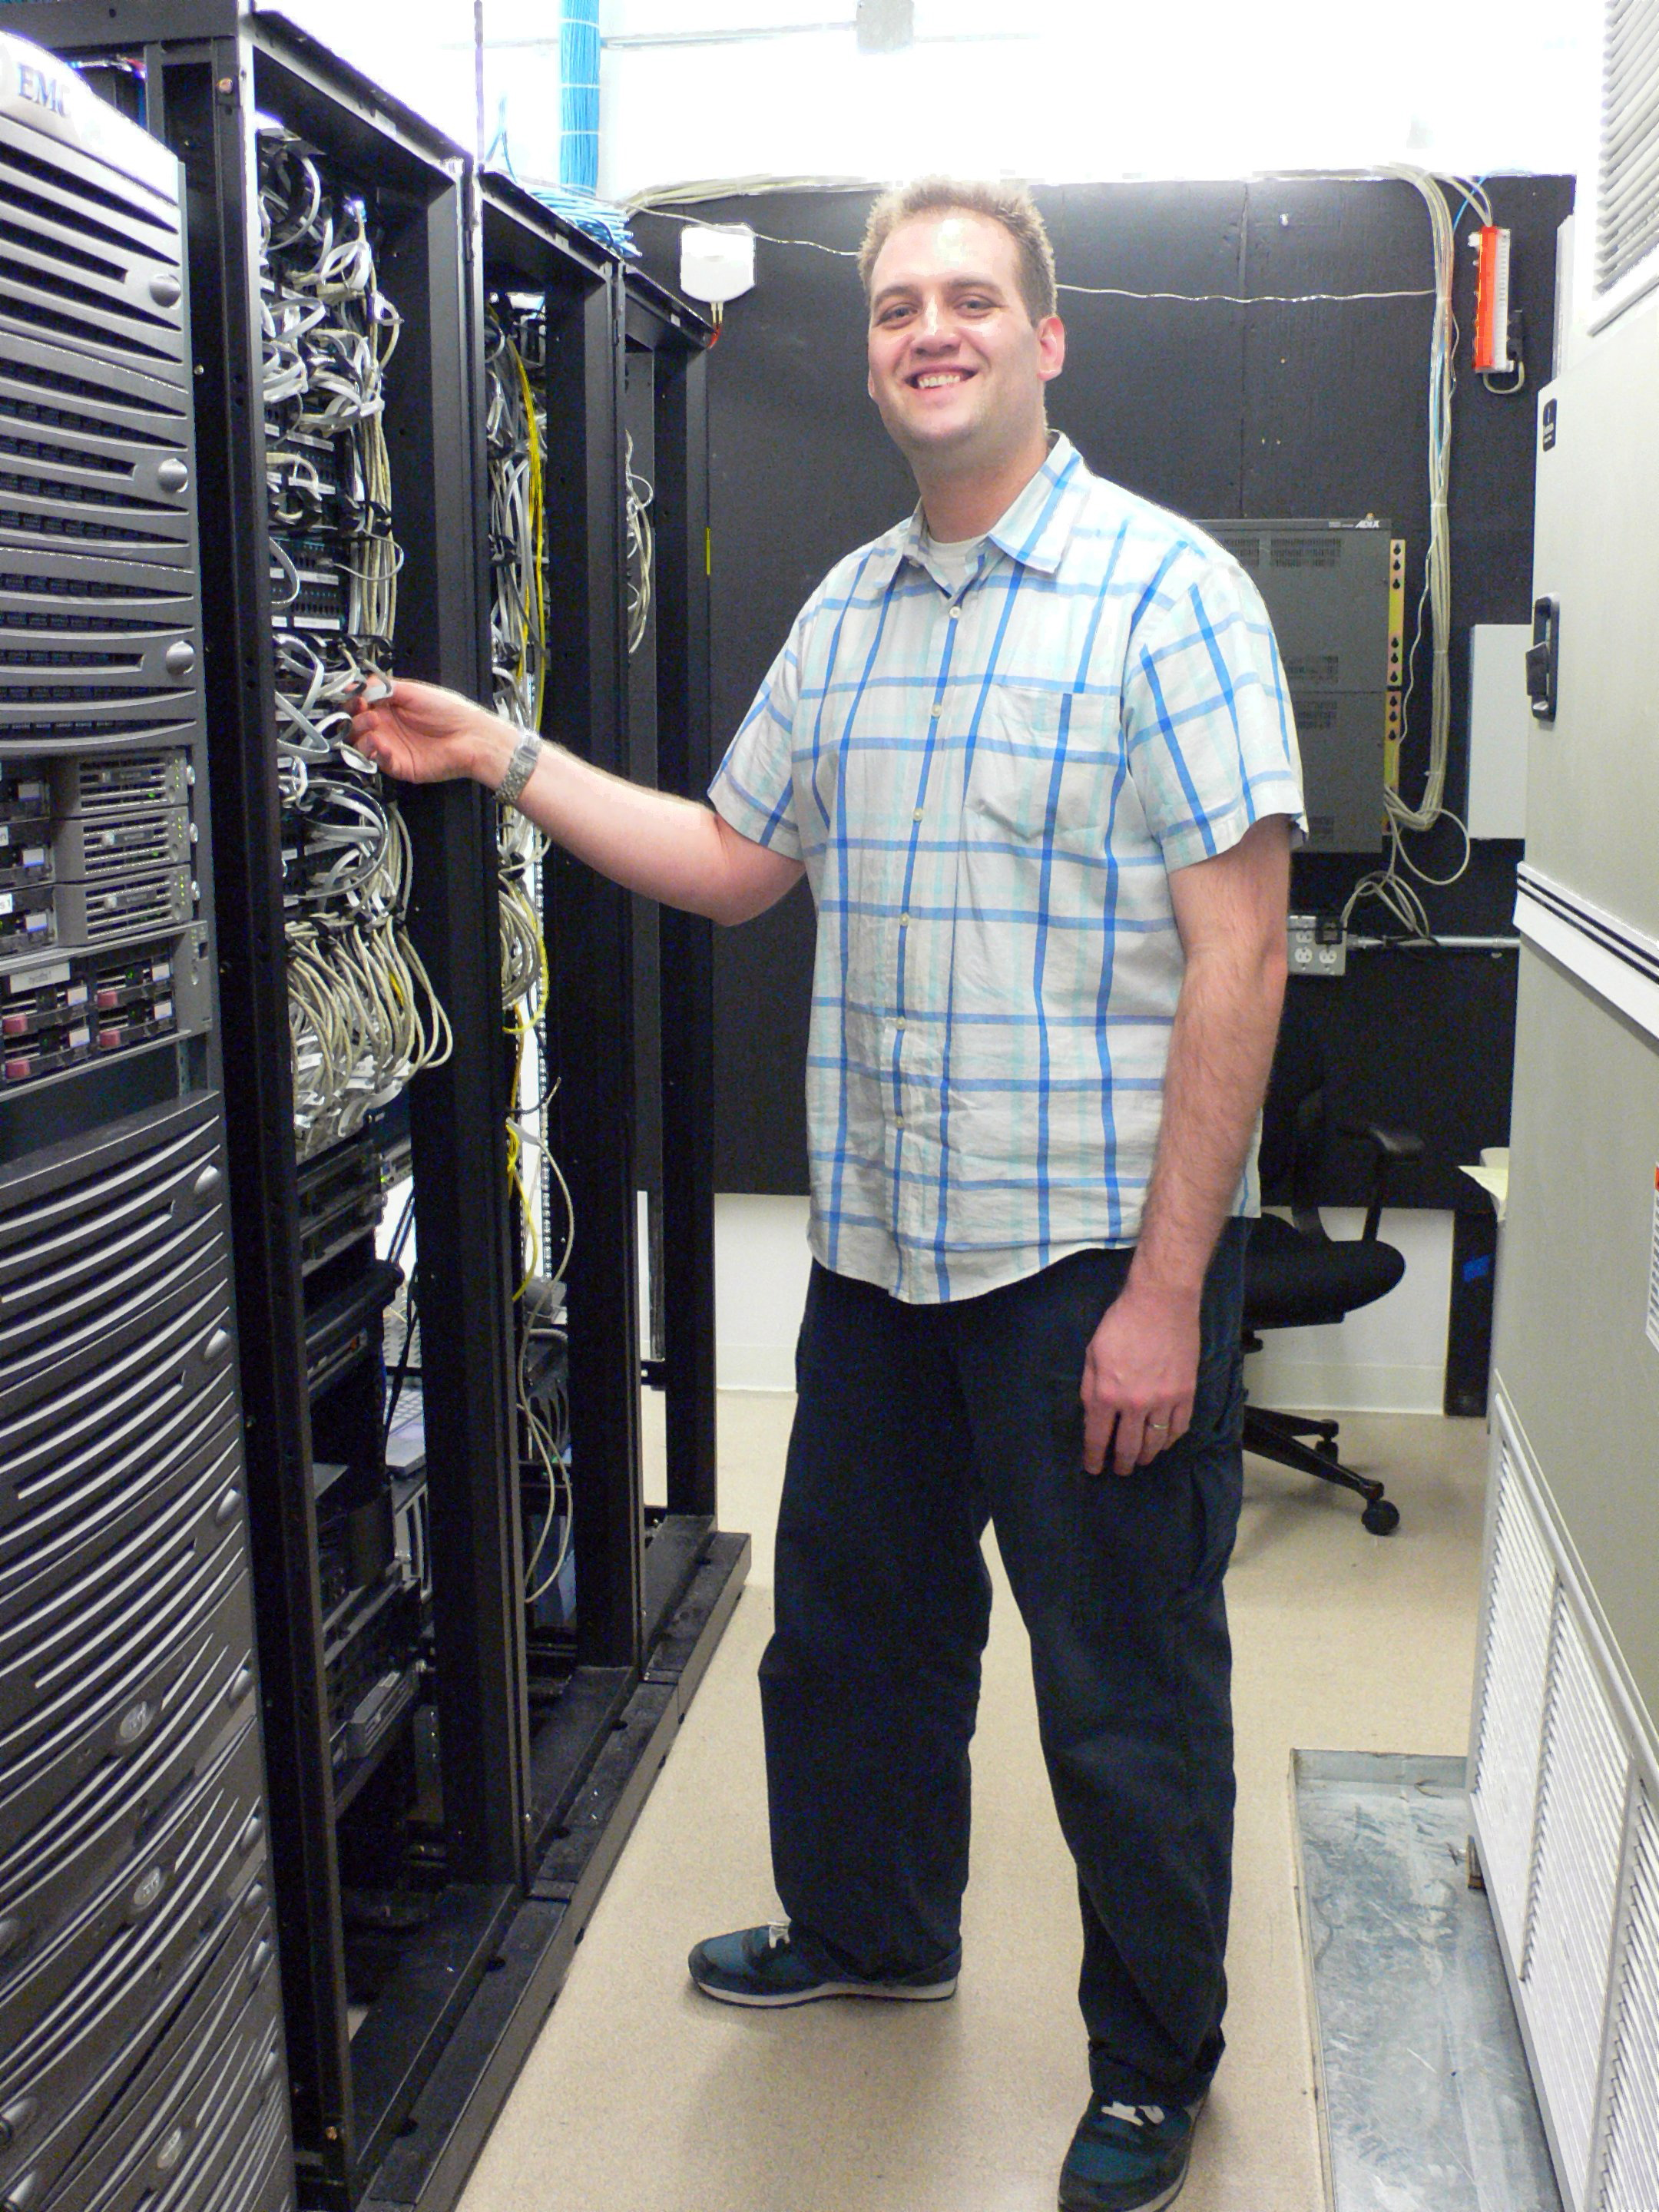 network and computer systems administrator Lone star college was founded in 1973 and offers associate degrees, workforce certificates and transfer credits the network and computer system administrator applied science degree is awarded for successful completion of the 60 semester credit hours required in the degree plan.